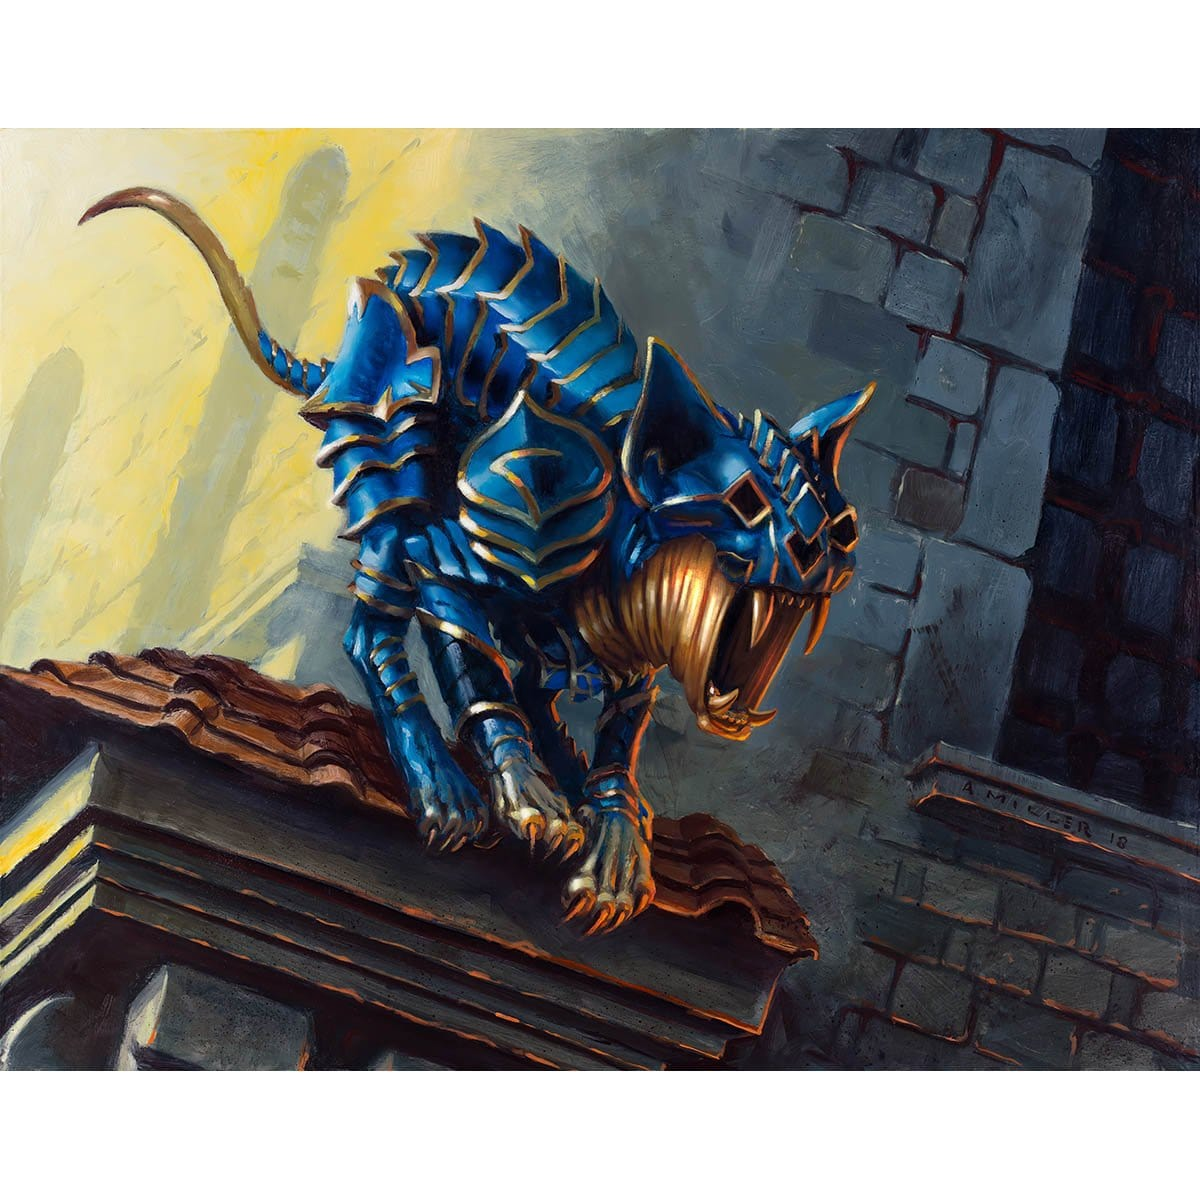 Dreadmalkin Print - Print - Original Magic Art - Accessories for Magic the Gathering and other card games